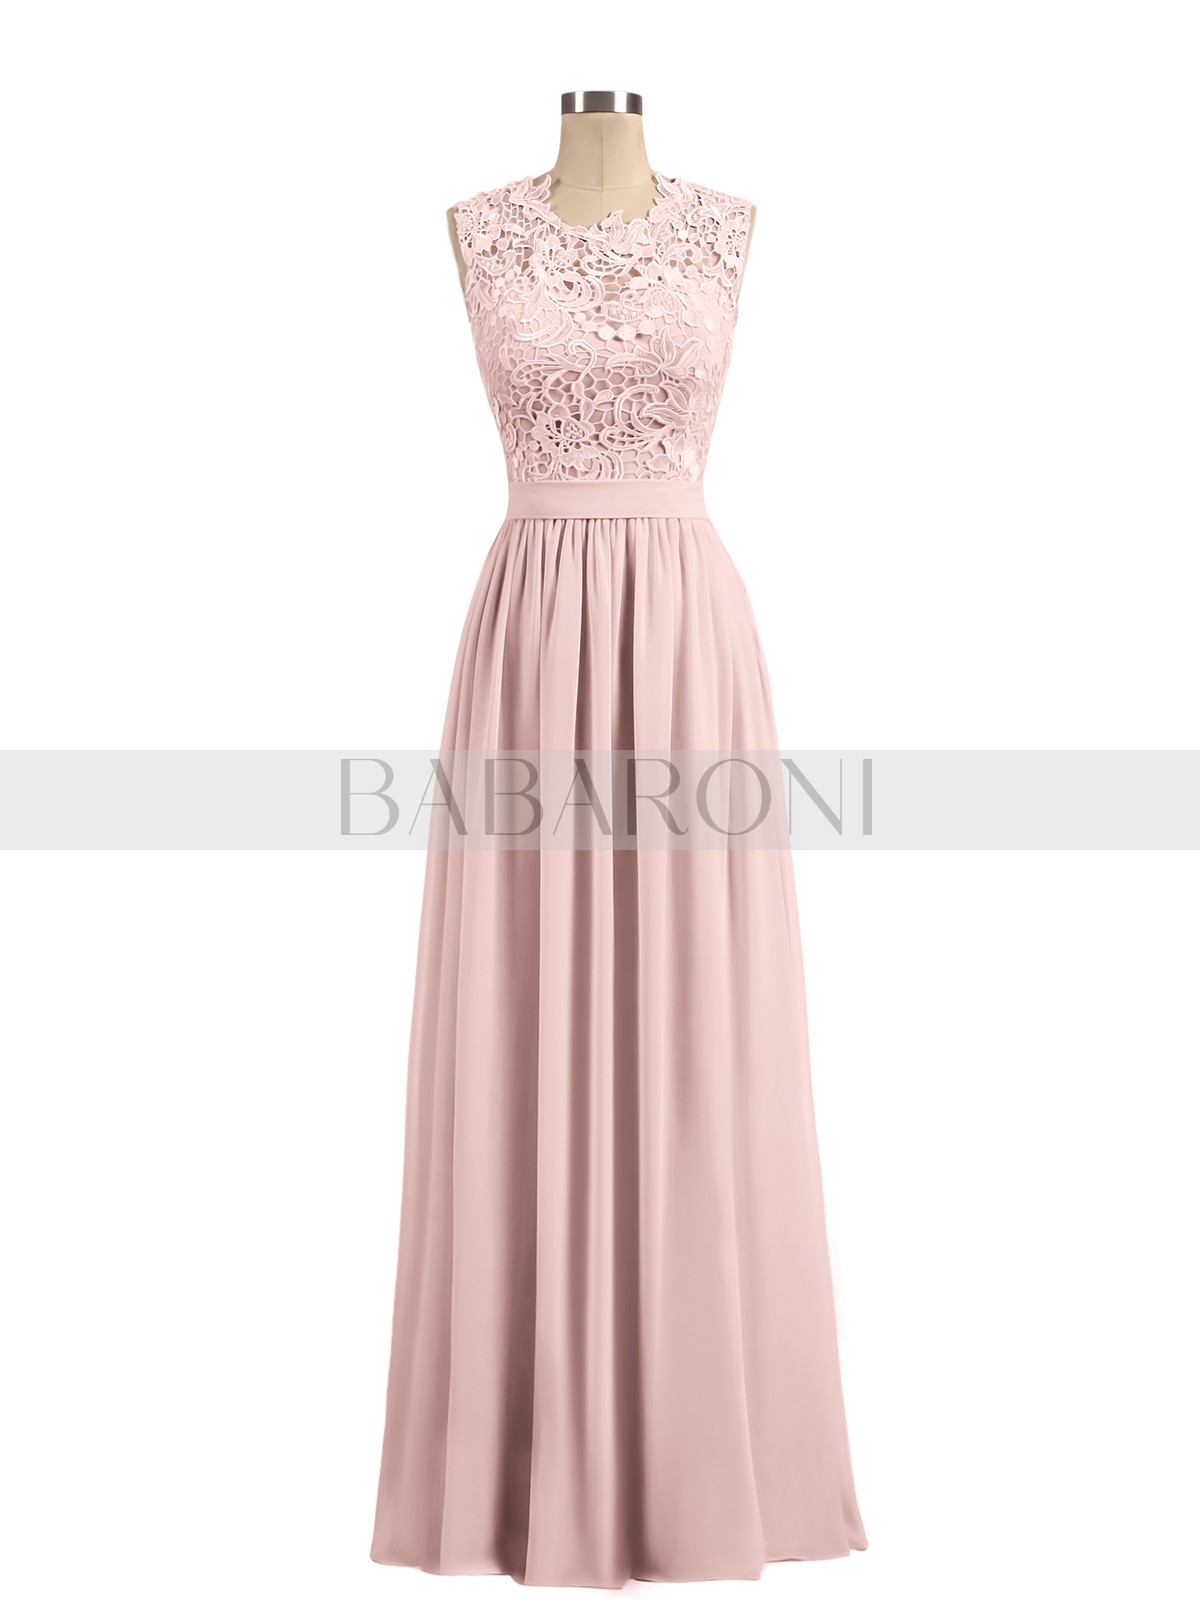 01f5dcaac92 Dusty Rose Aletta Illusion Neck Chiffon and Lace Dresses